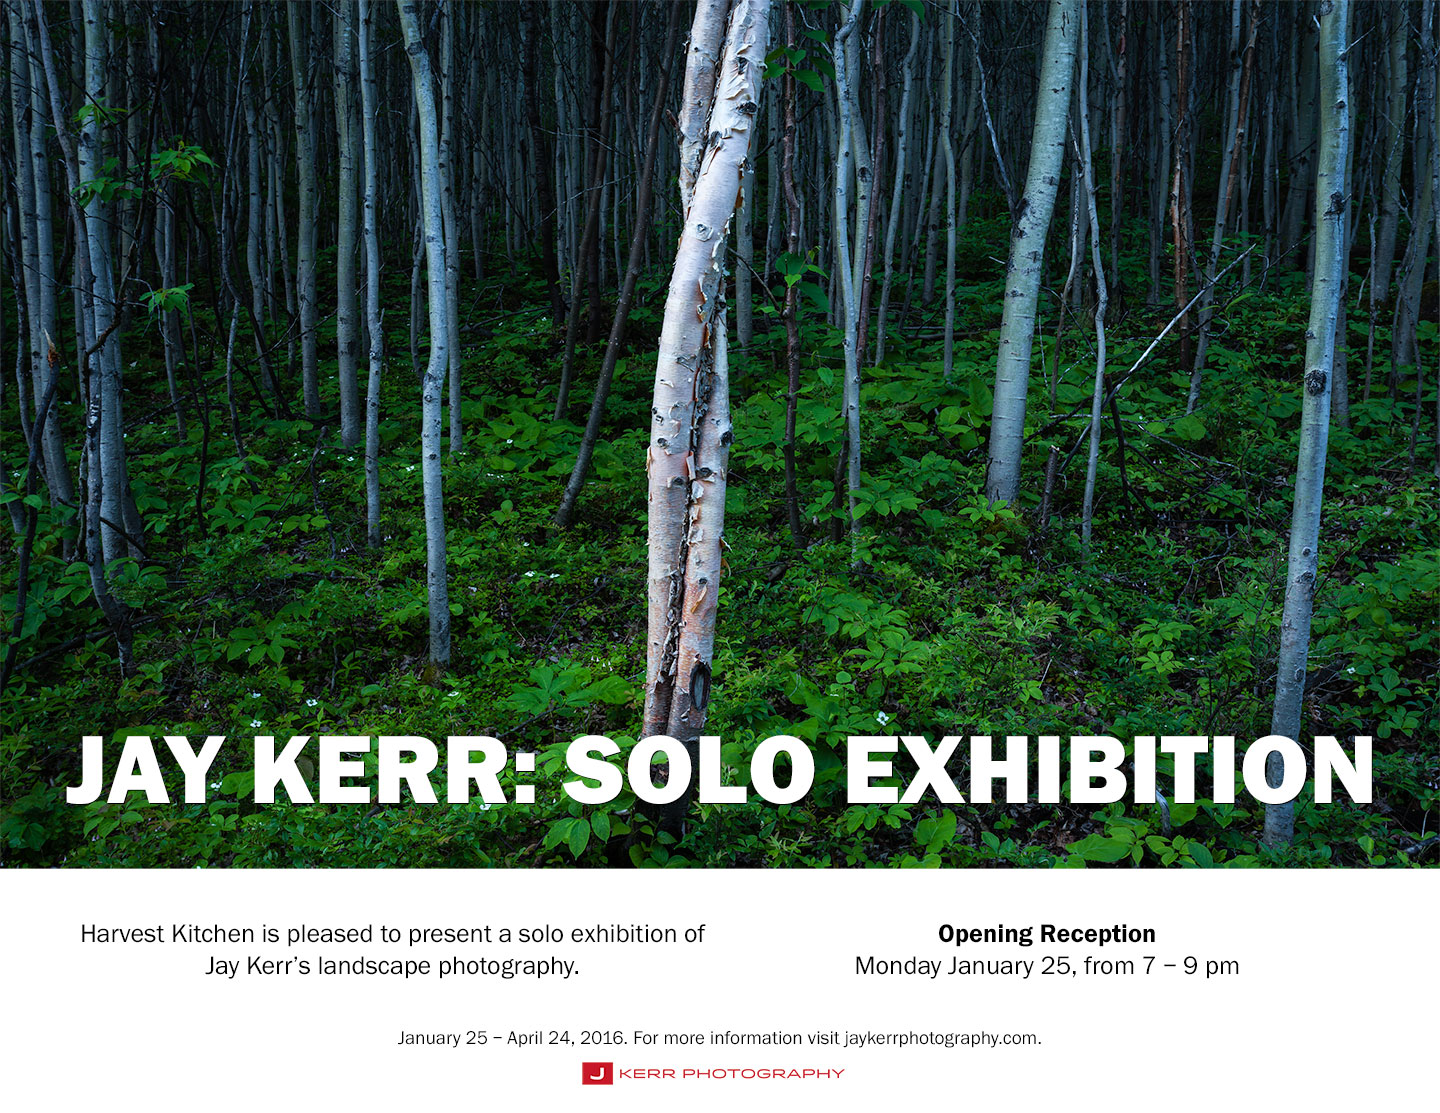 JAY KERR: SOLO EXHIBITION